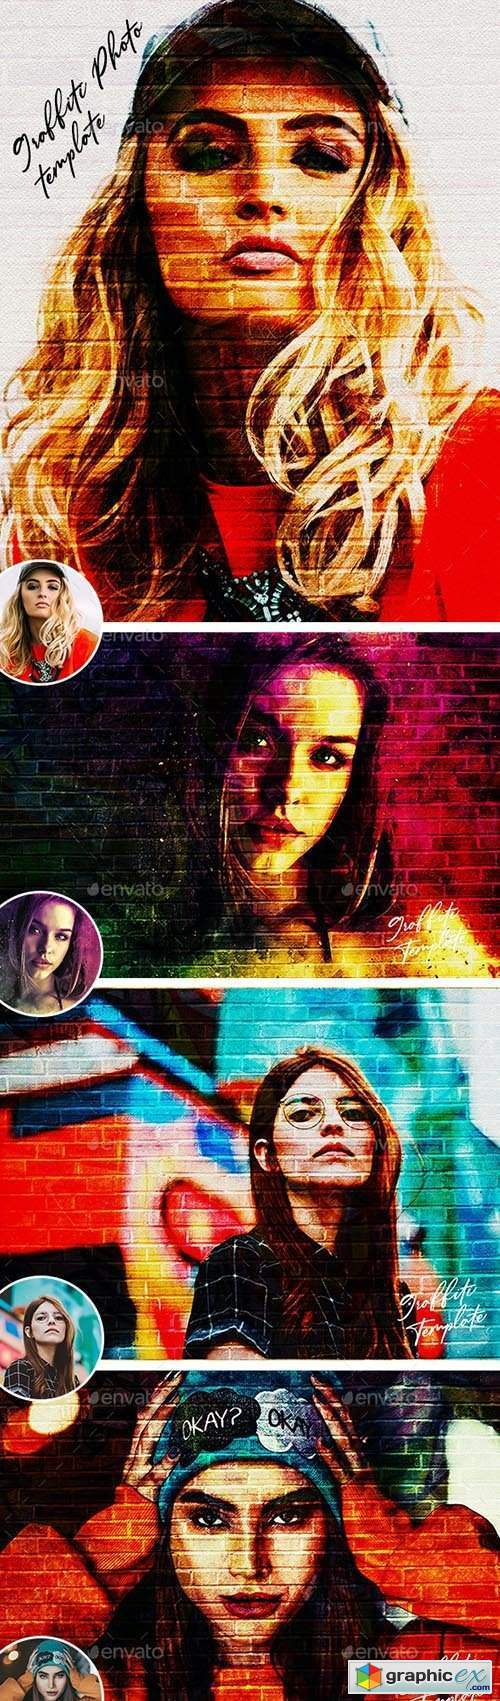 Graffiti Effects Photo Template